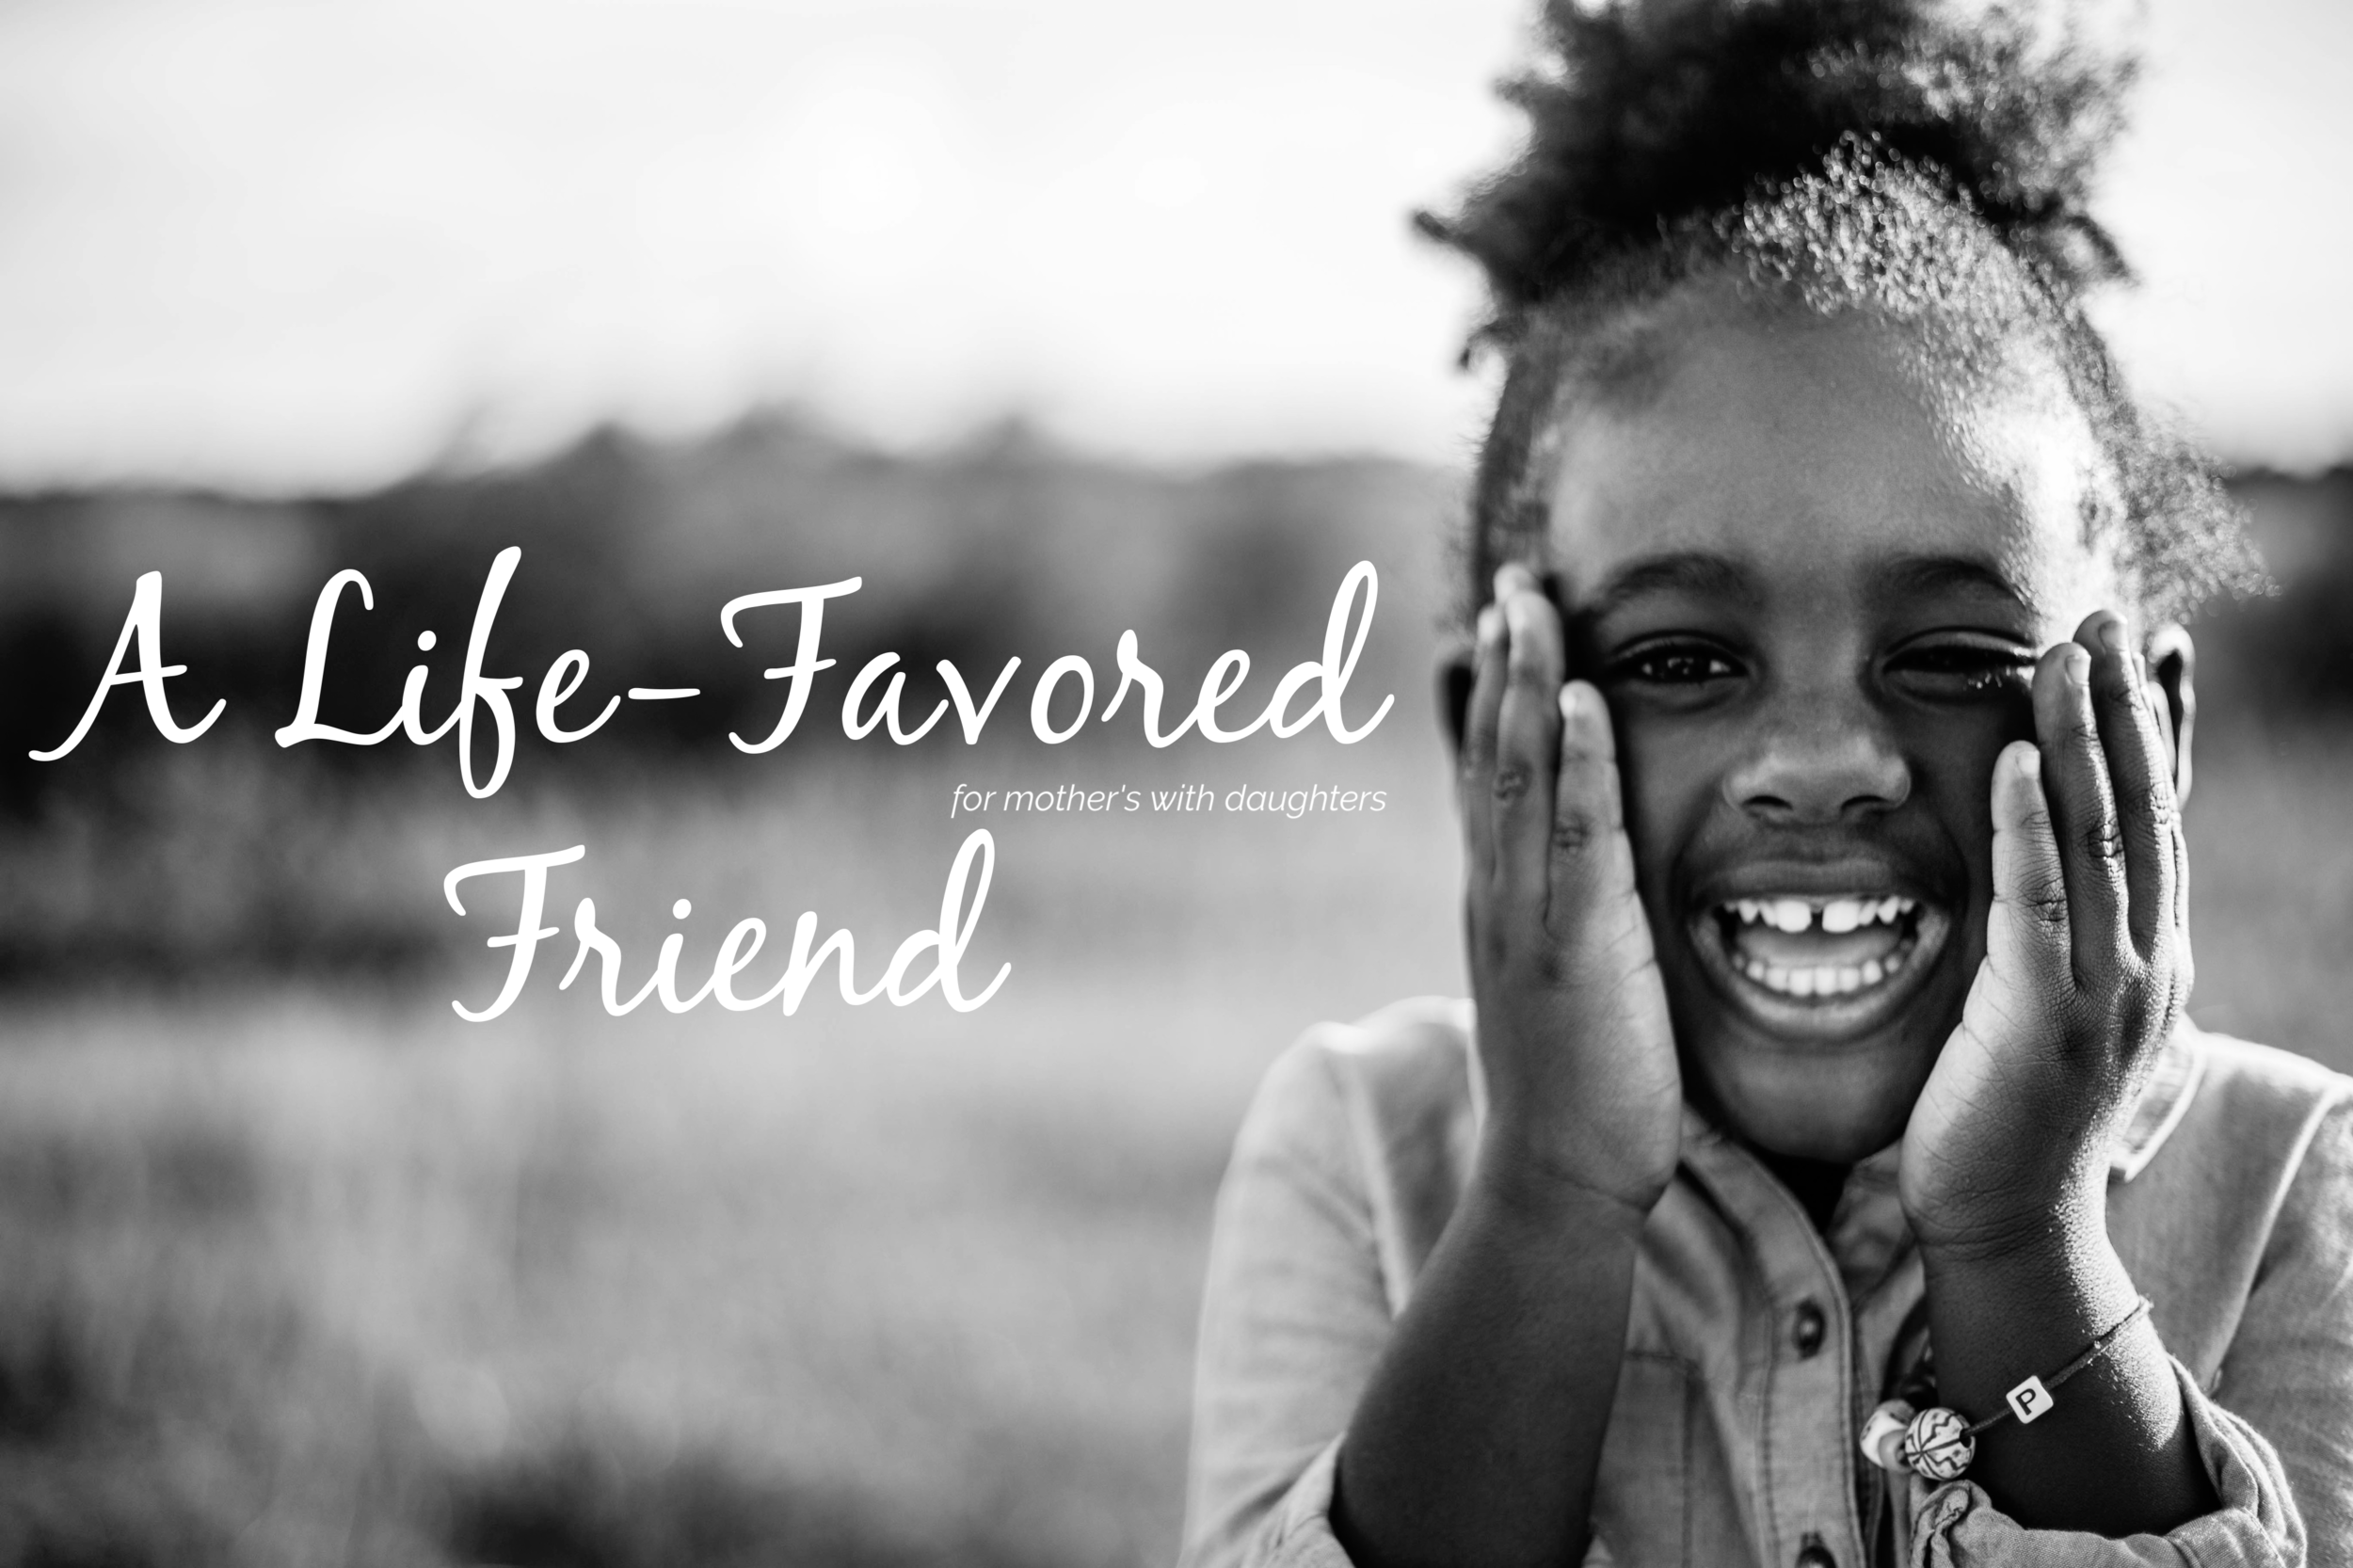 Life-Favored Friend